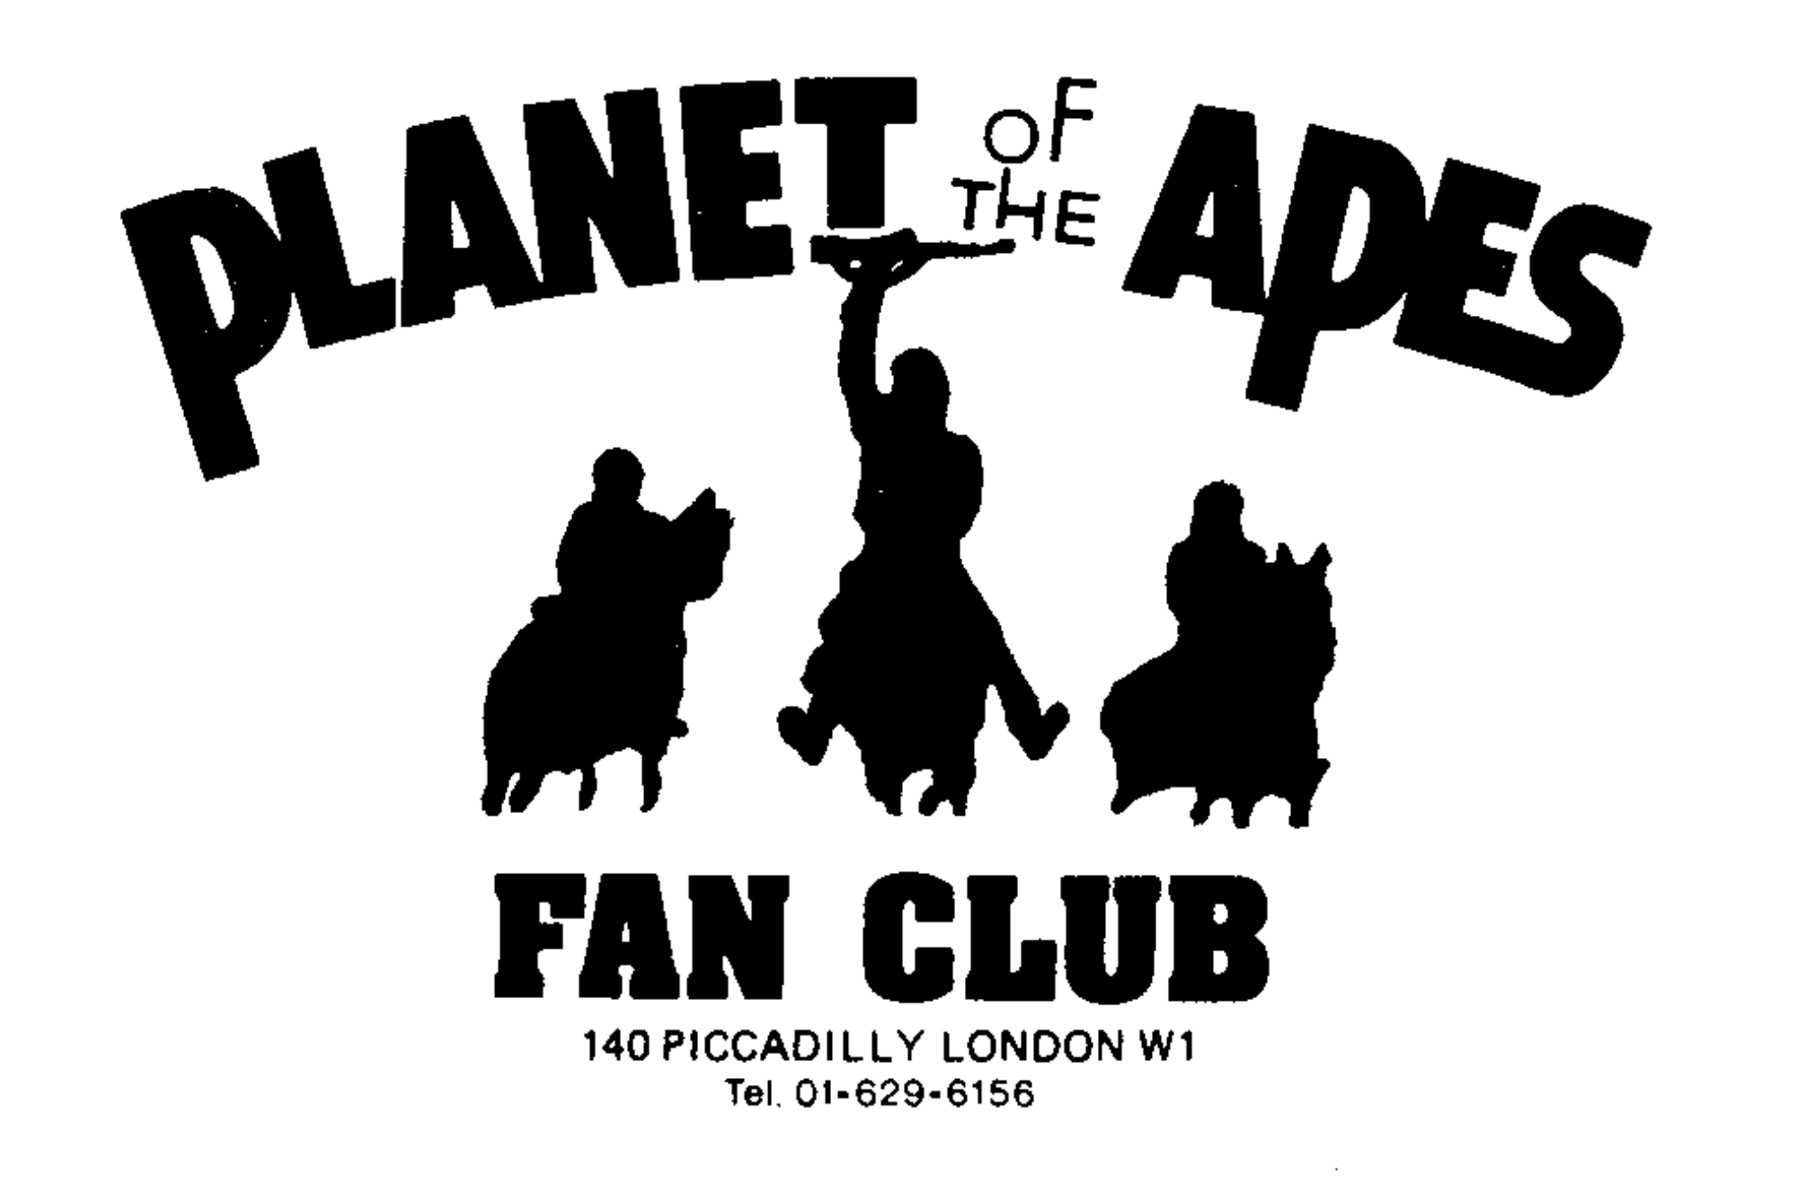 Planet of the Apes UK Live Show